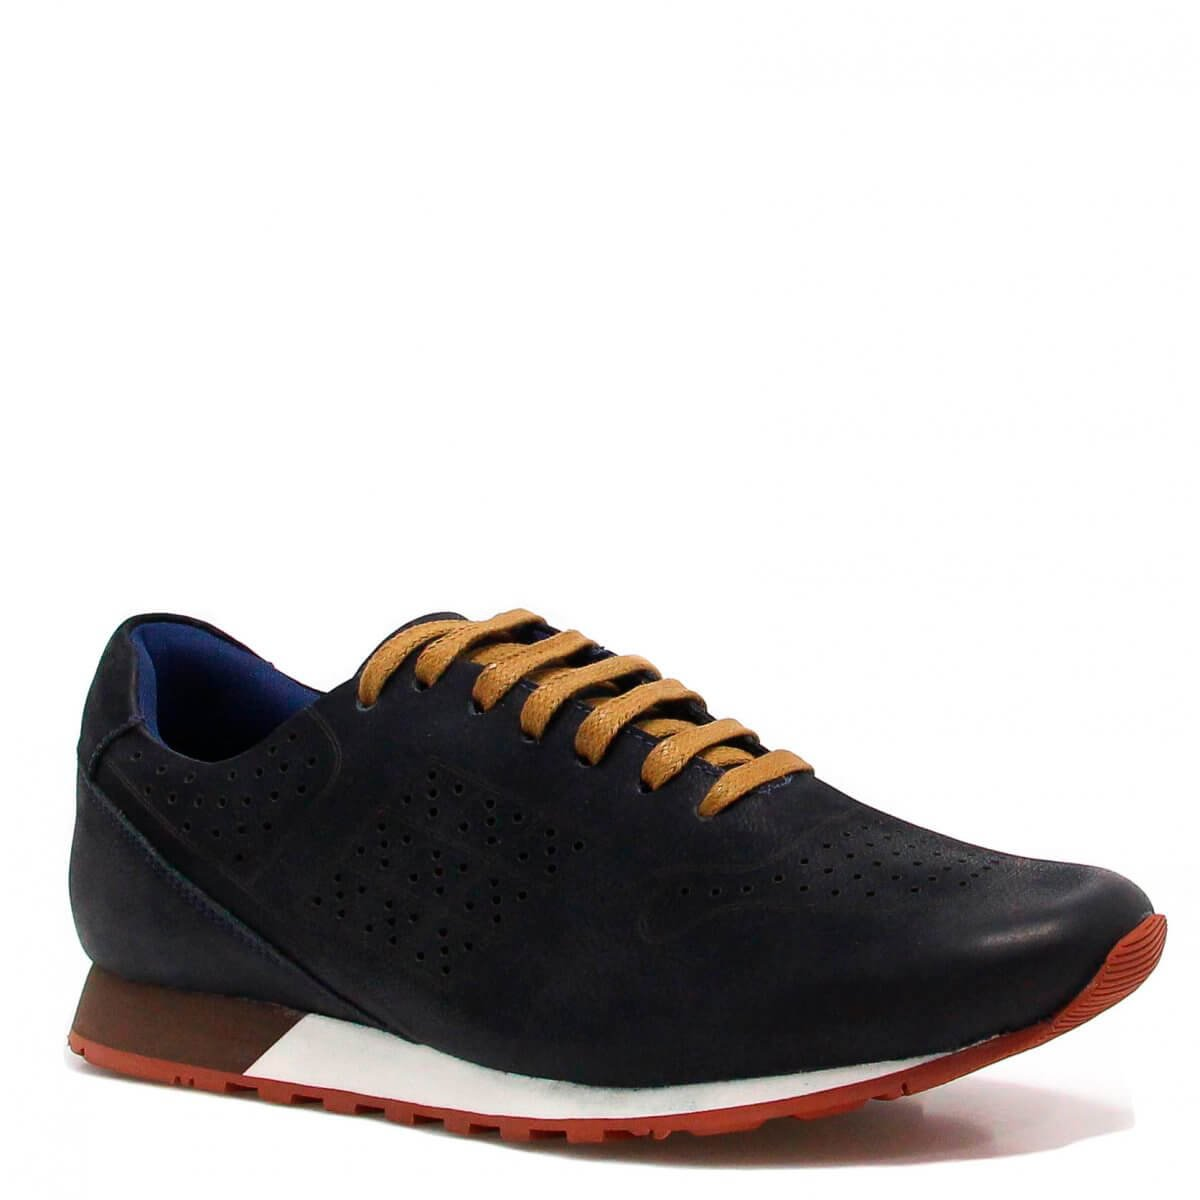 Sapatênis Zariff Shoes Casual Couro Azul